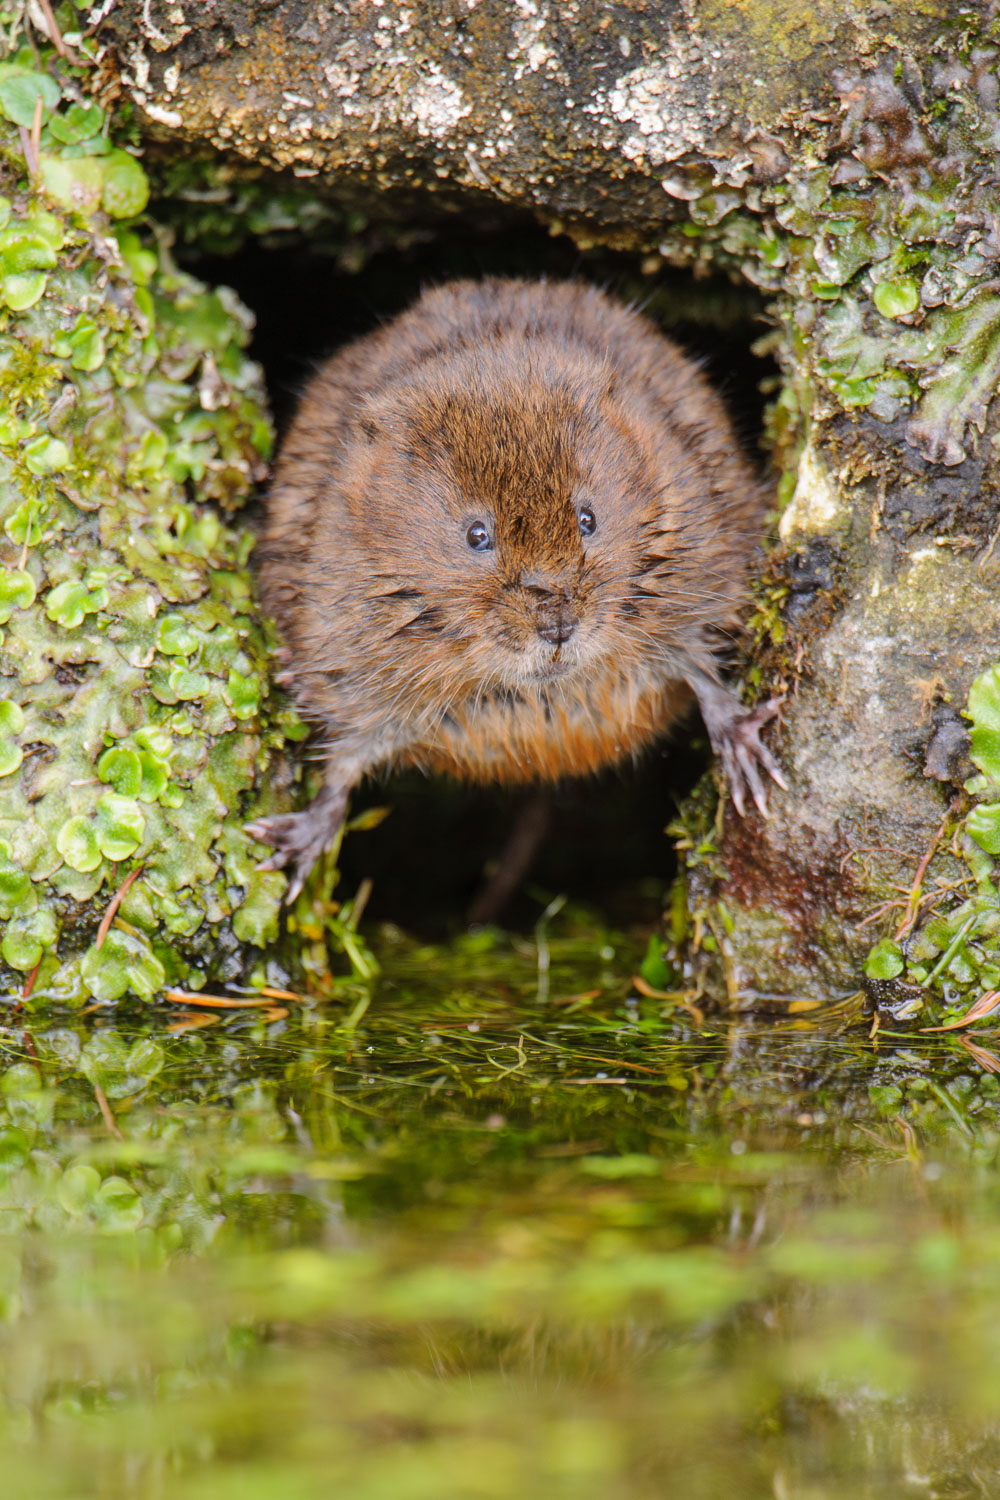 Water Vole in a Hole